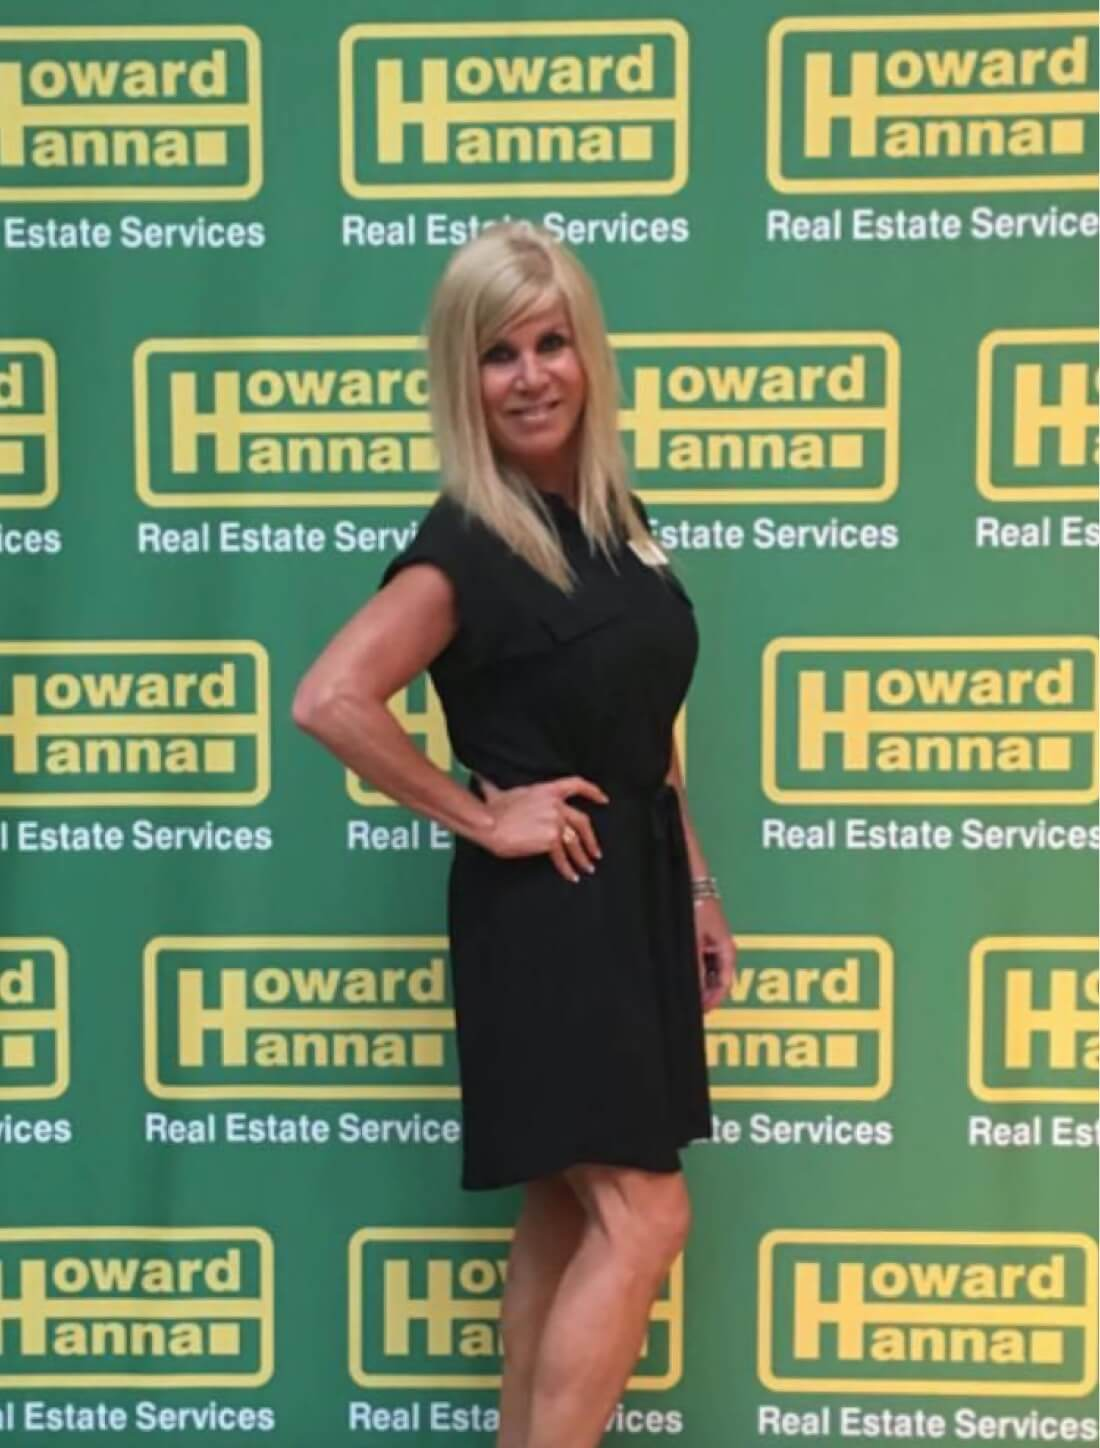 Donna Littlefield posing in front of Howard Hanna Real Estate Services banner